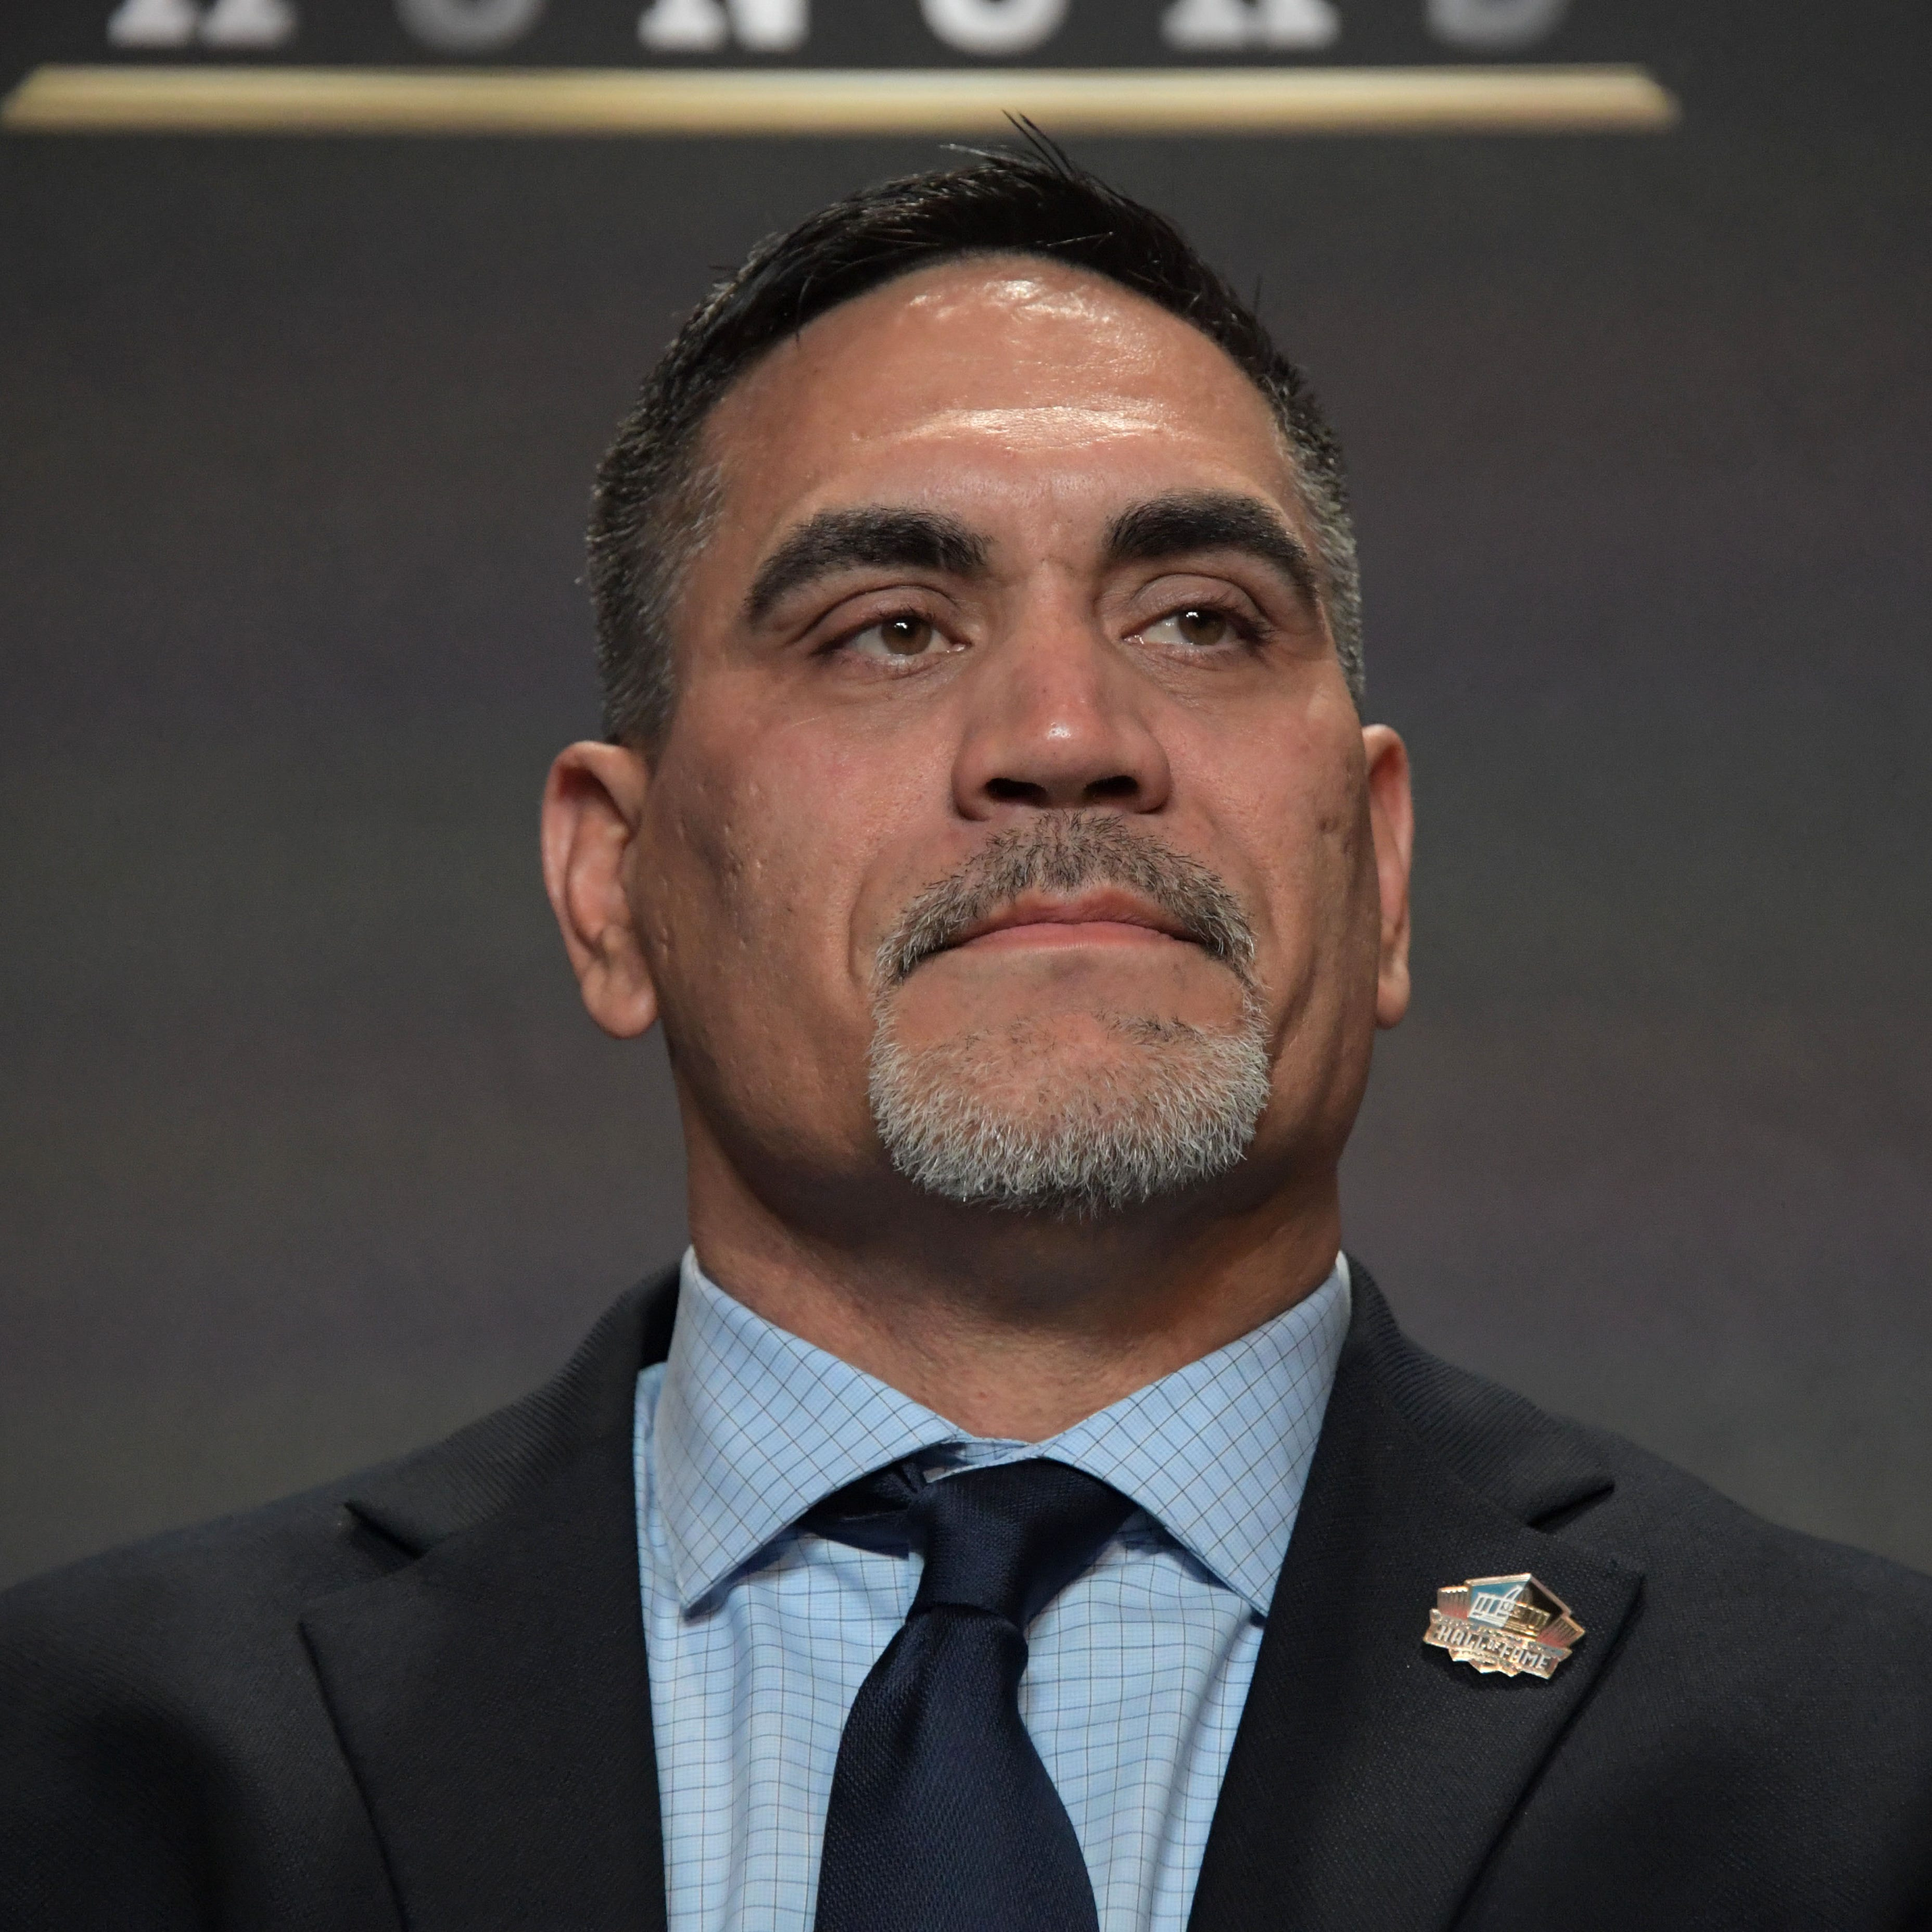 Jets' Kevin Mawae donates memorabilia to Pro Football Hall of Fame